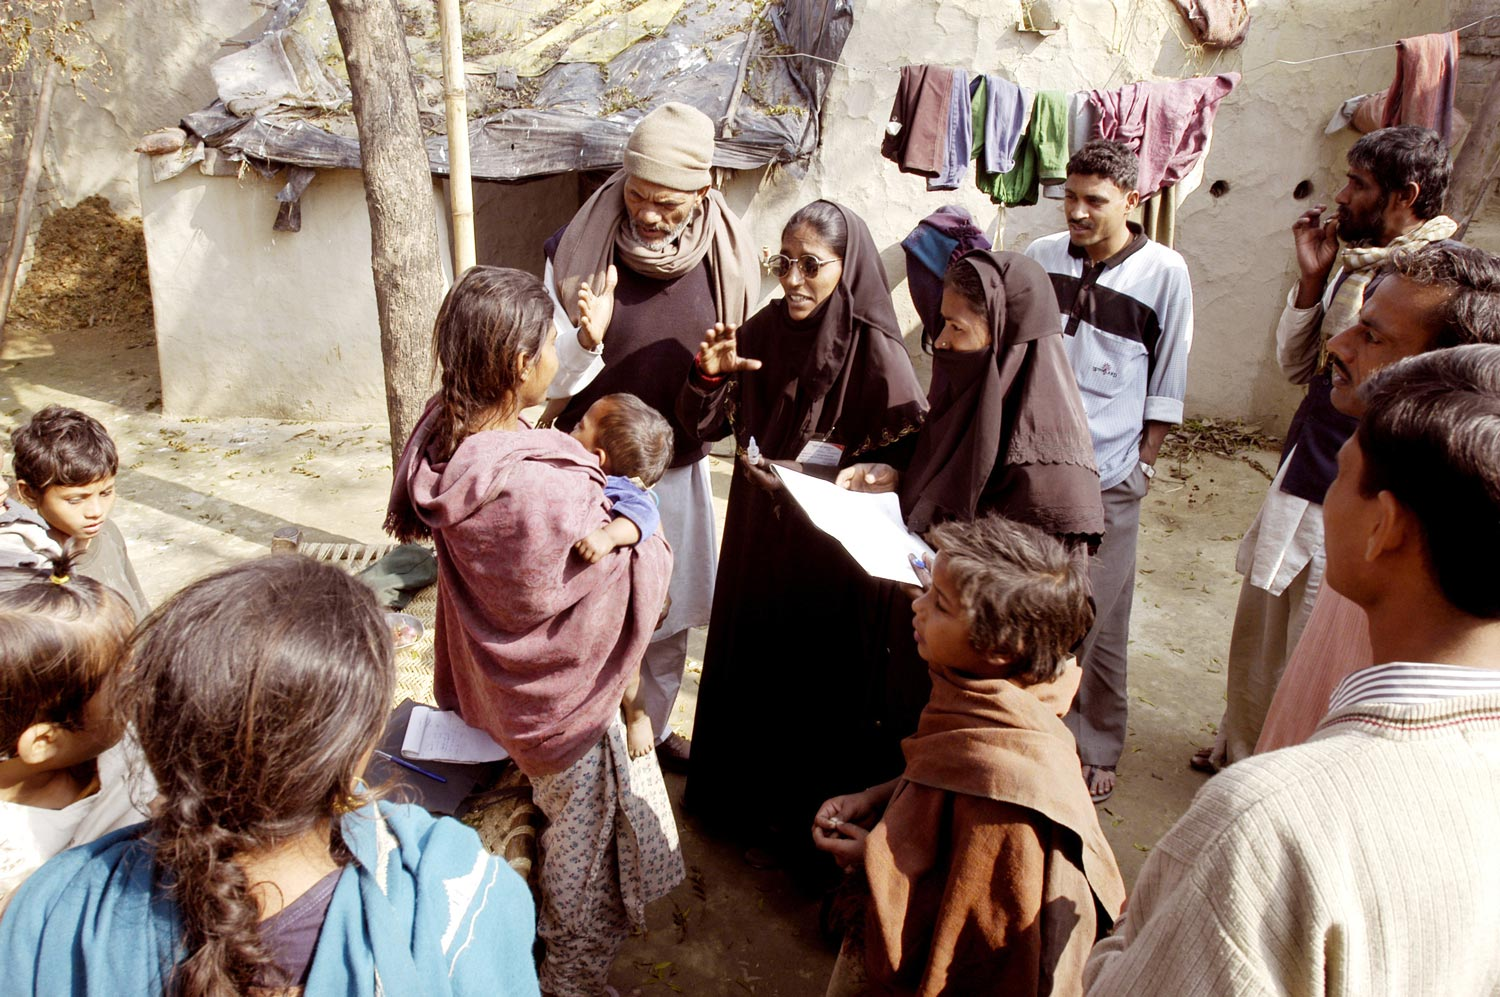 Health workers and villagers try to convince a woman to let her children be vaccinated against polio in Moradabad